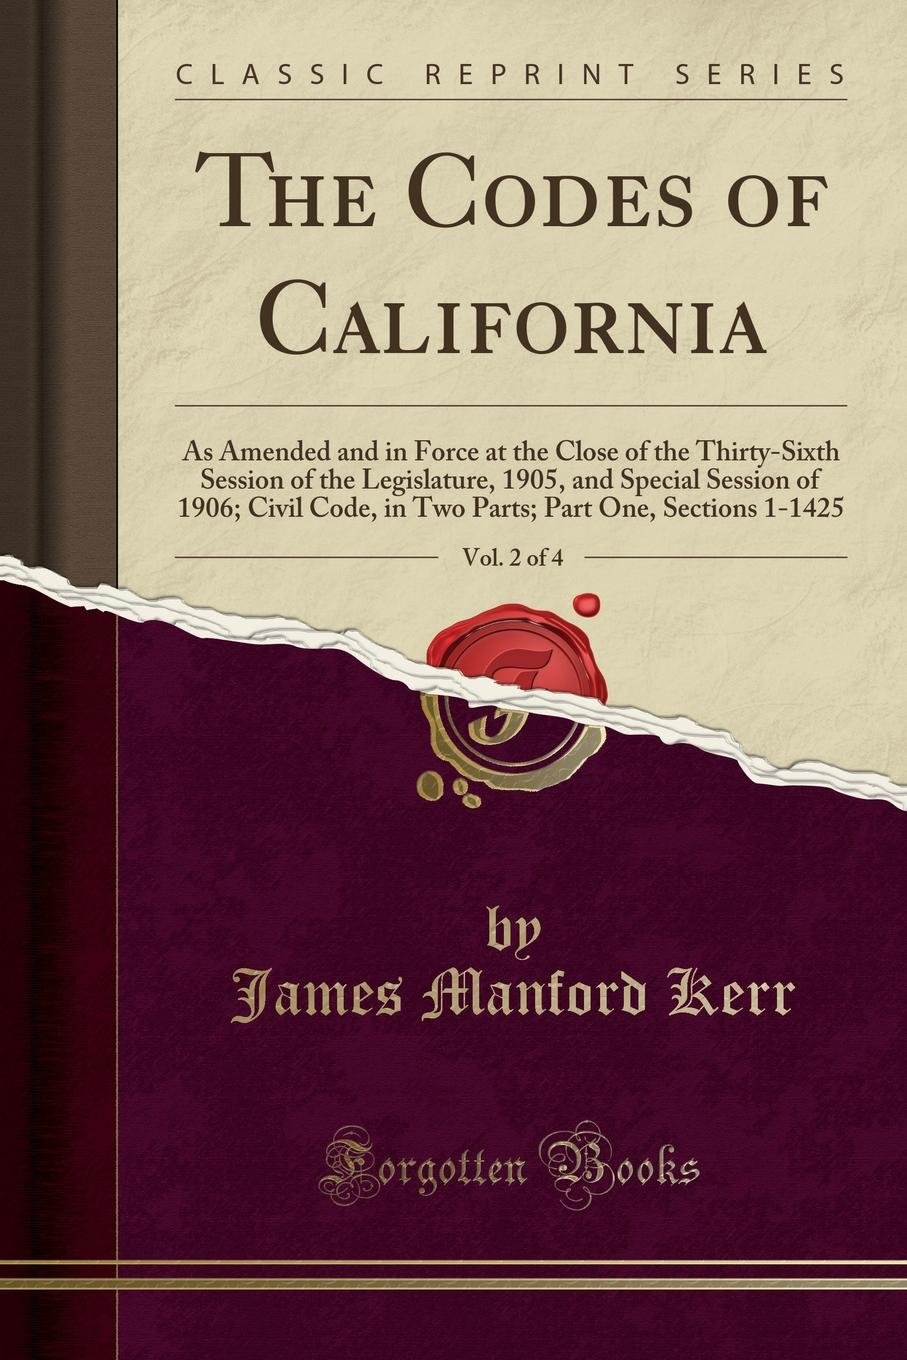 The Codes of California, Vol. 2 of 4: As Amended and in Force at the Close of the Thirty-Sixth Session of the Legislature, 1905, and Special Session ... Part One, Sections 1-1425 (Classic Reprint) ebook